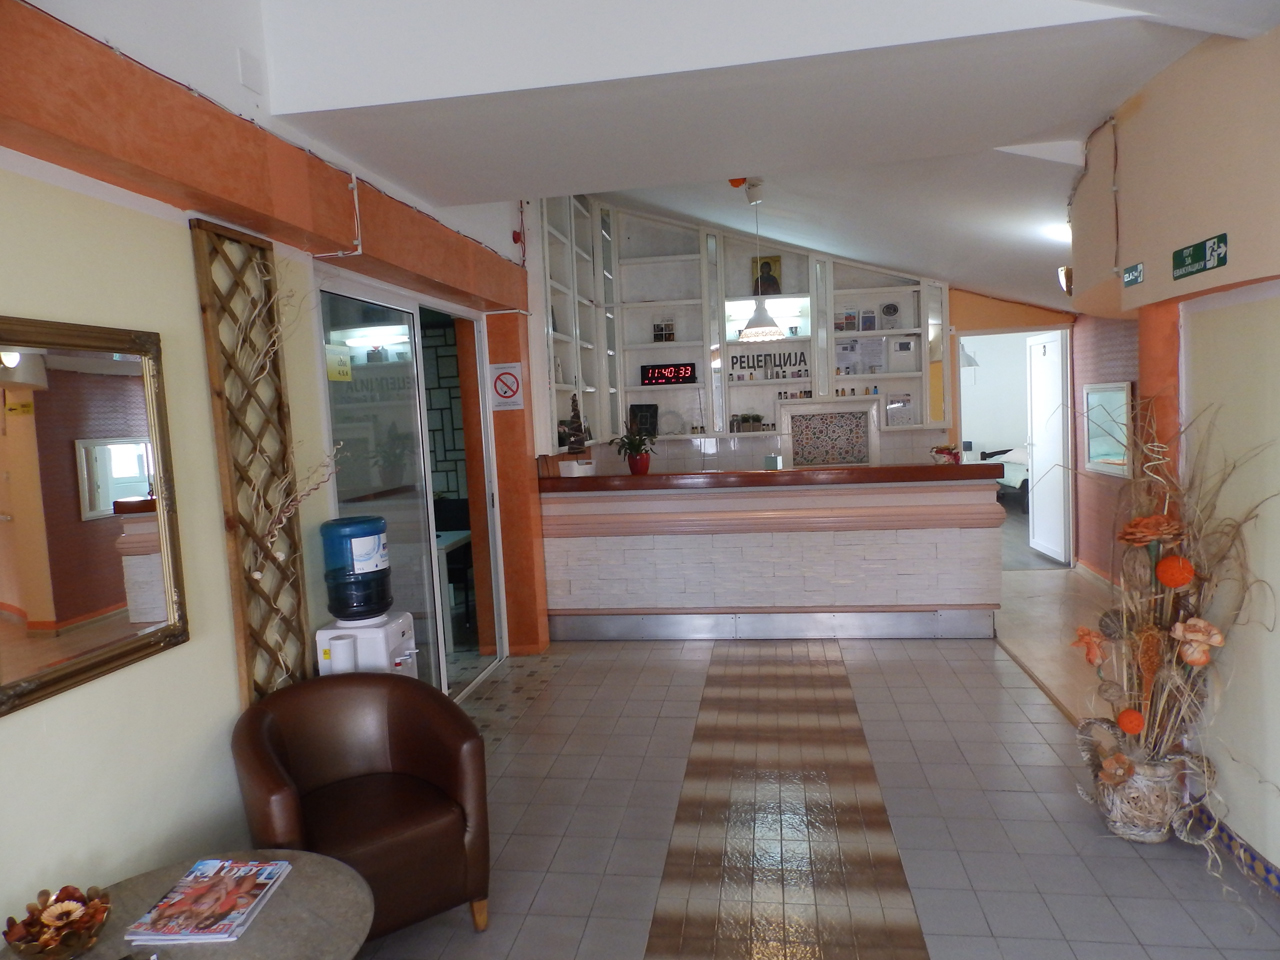 HOME FOR THE ELDERLY PADINA-MACVA Adult care home Sabac - Photo 3